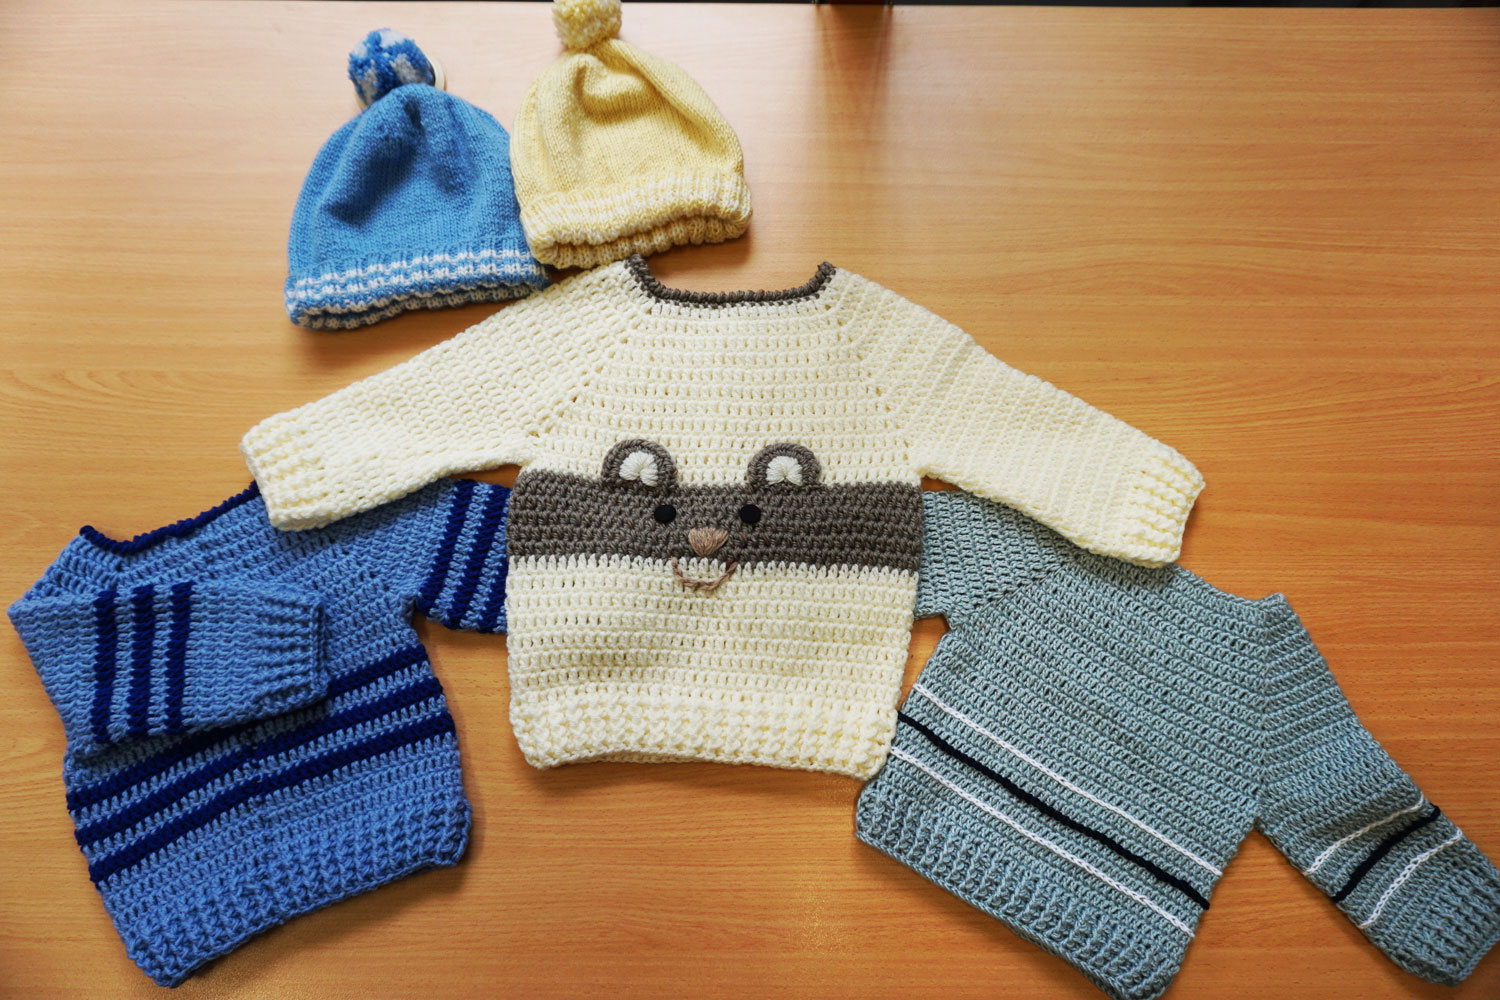 Child's crocheted jumpers and knitted beanie